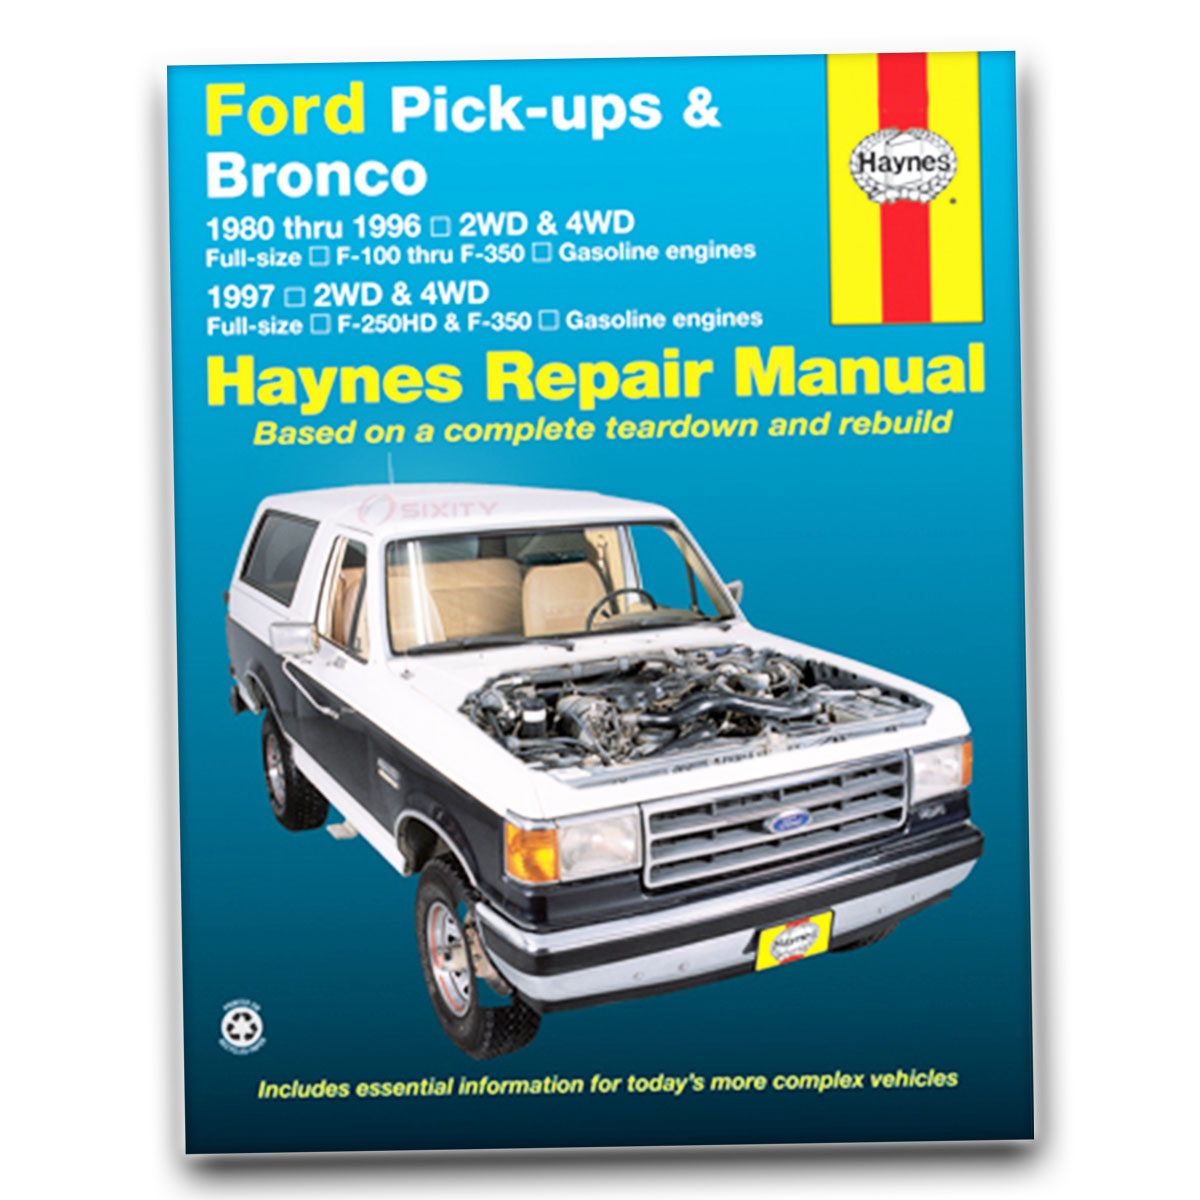 Ford F-250 Haynes Repair Manual Custom Base Special Eddie Bauer XLS XLT qw